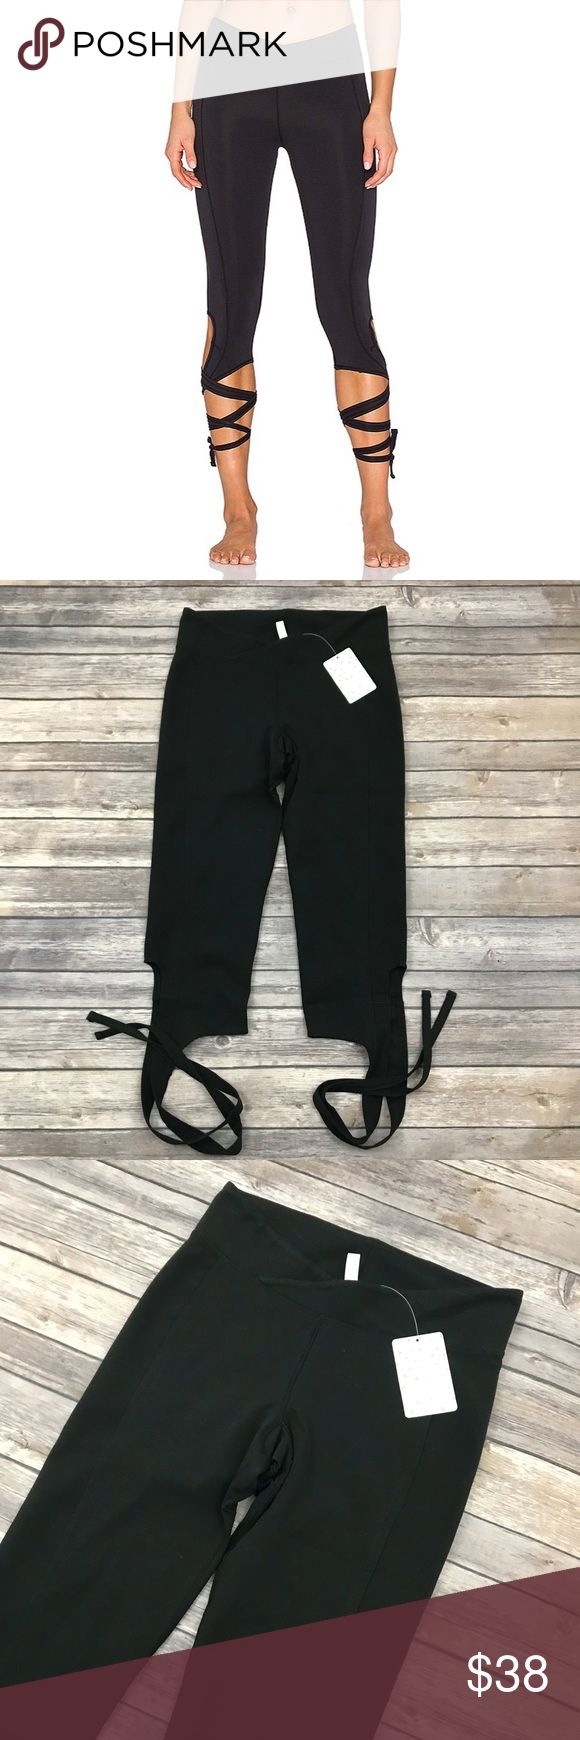 New Free People Turnout Leggings in Black Free People Turnout Lace Up Crop Leggings in Black •New with tags •Size Small •Retails for $88  Check out my other listings- Nike, adidas, Michael Kors, Hunter Boots, Kate Spade, Miss Me, Rock Revival, Coach, Wildfox, Victoria's Slecret, PINK, True Religion, Ugg Australia, Free People and more! Free People Pants Leggings